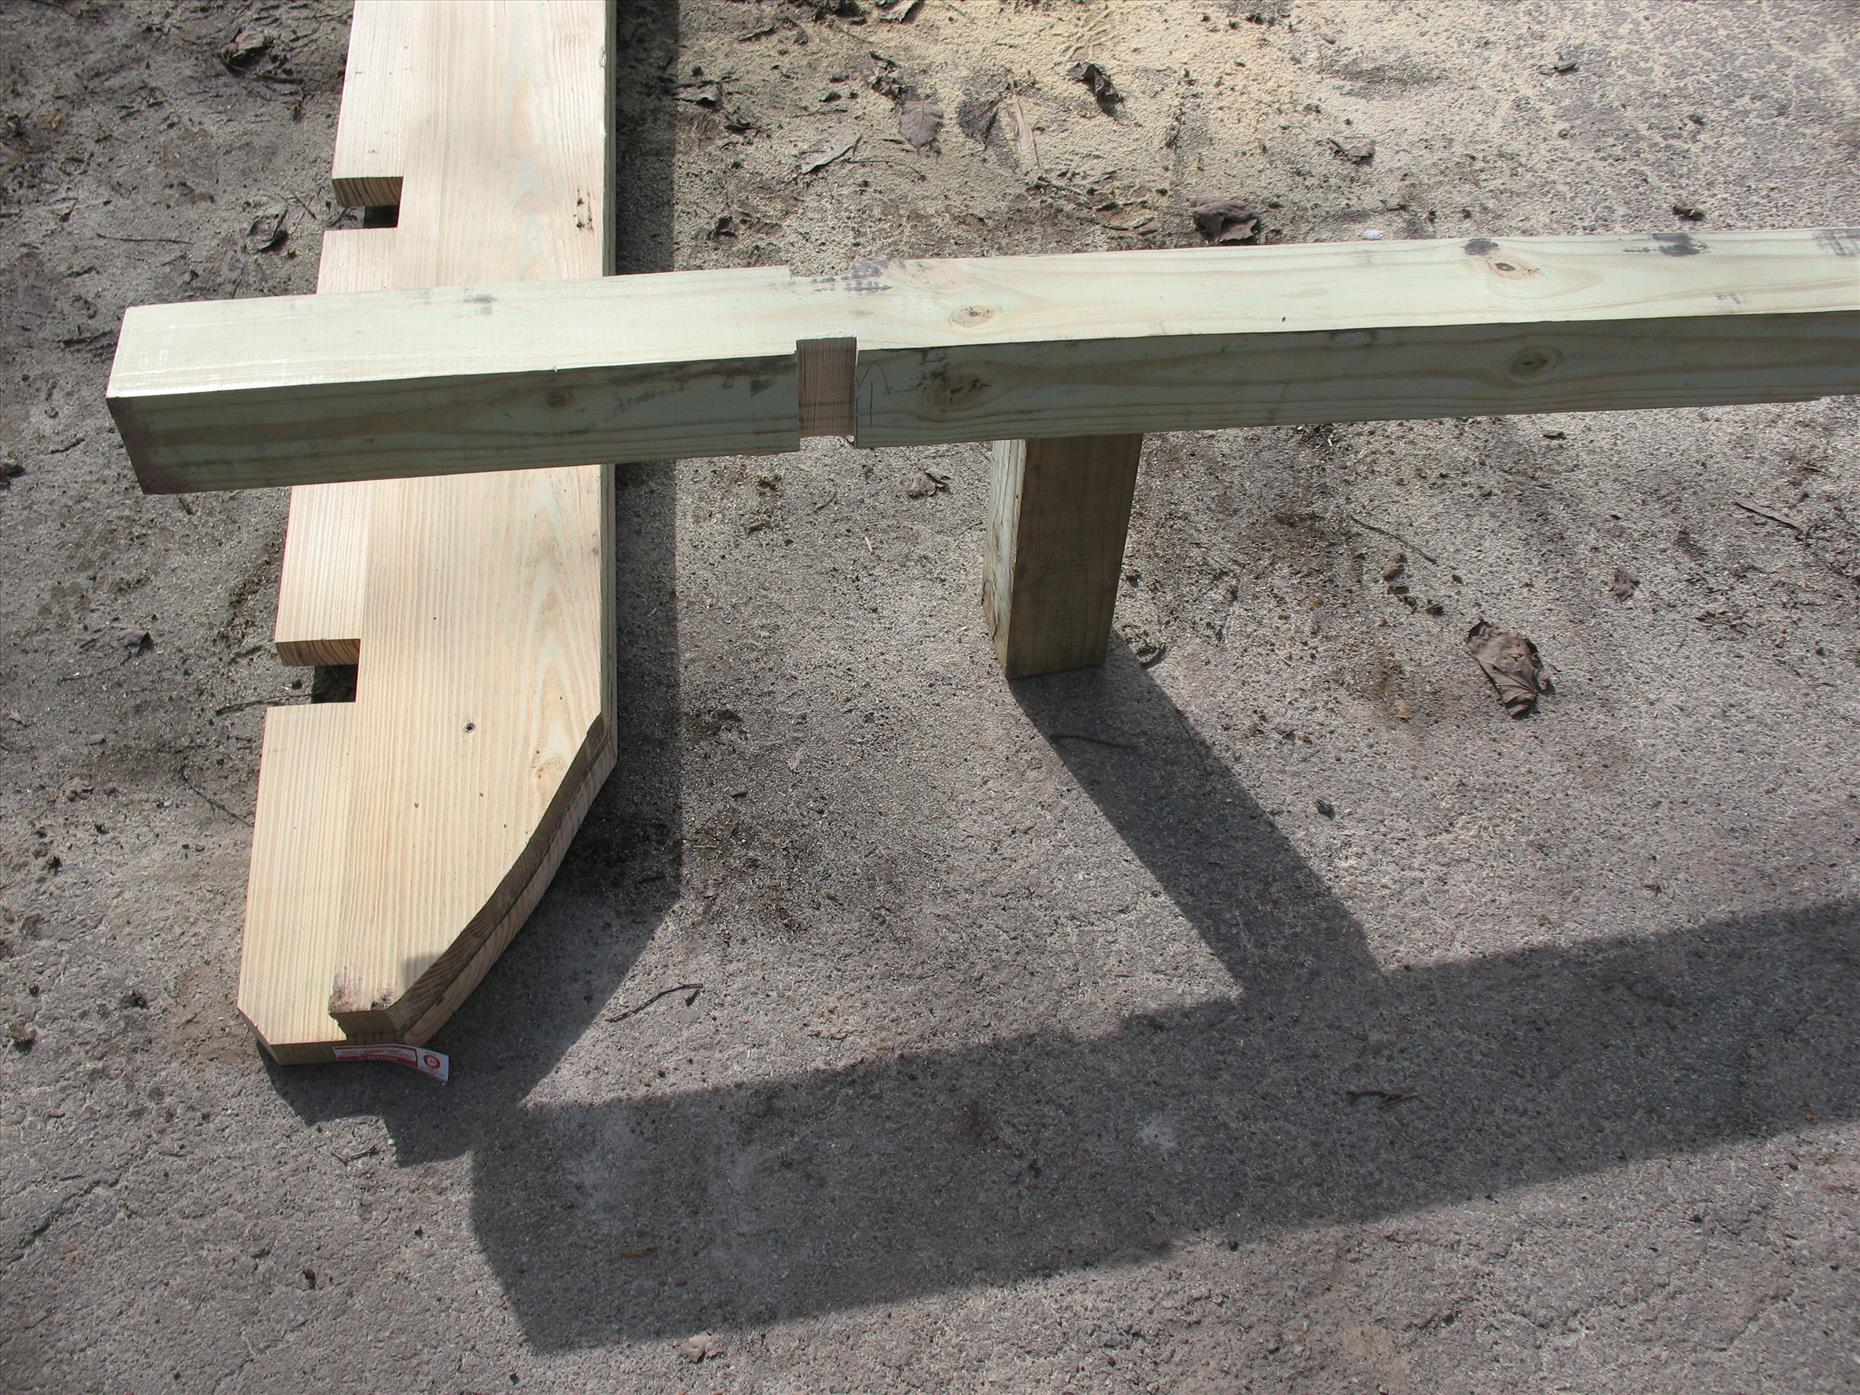 Here's a close up of one of the skids (a bolted together 2x12 and 2x8) and the notched 4x4 floor joist.